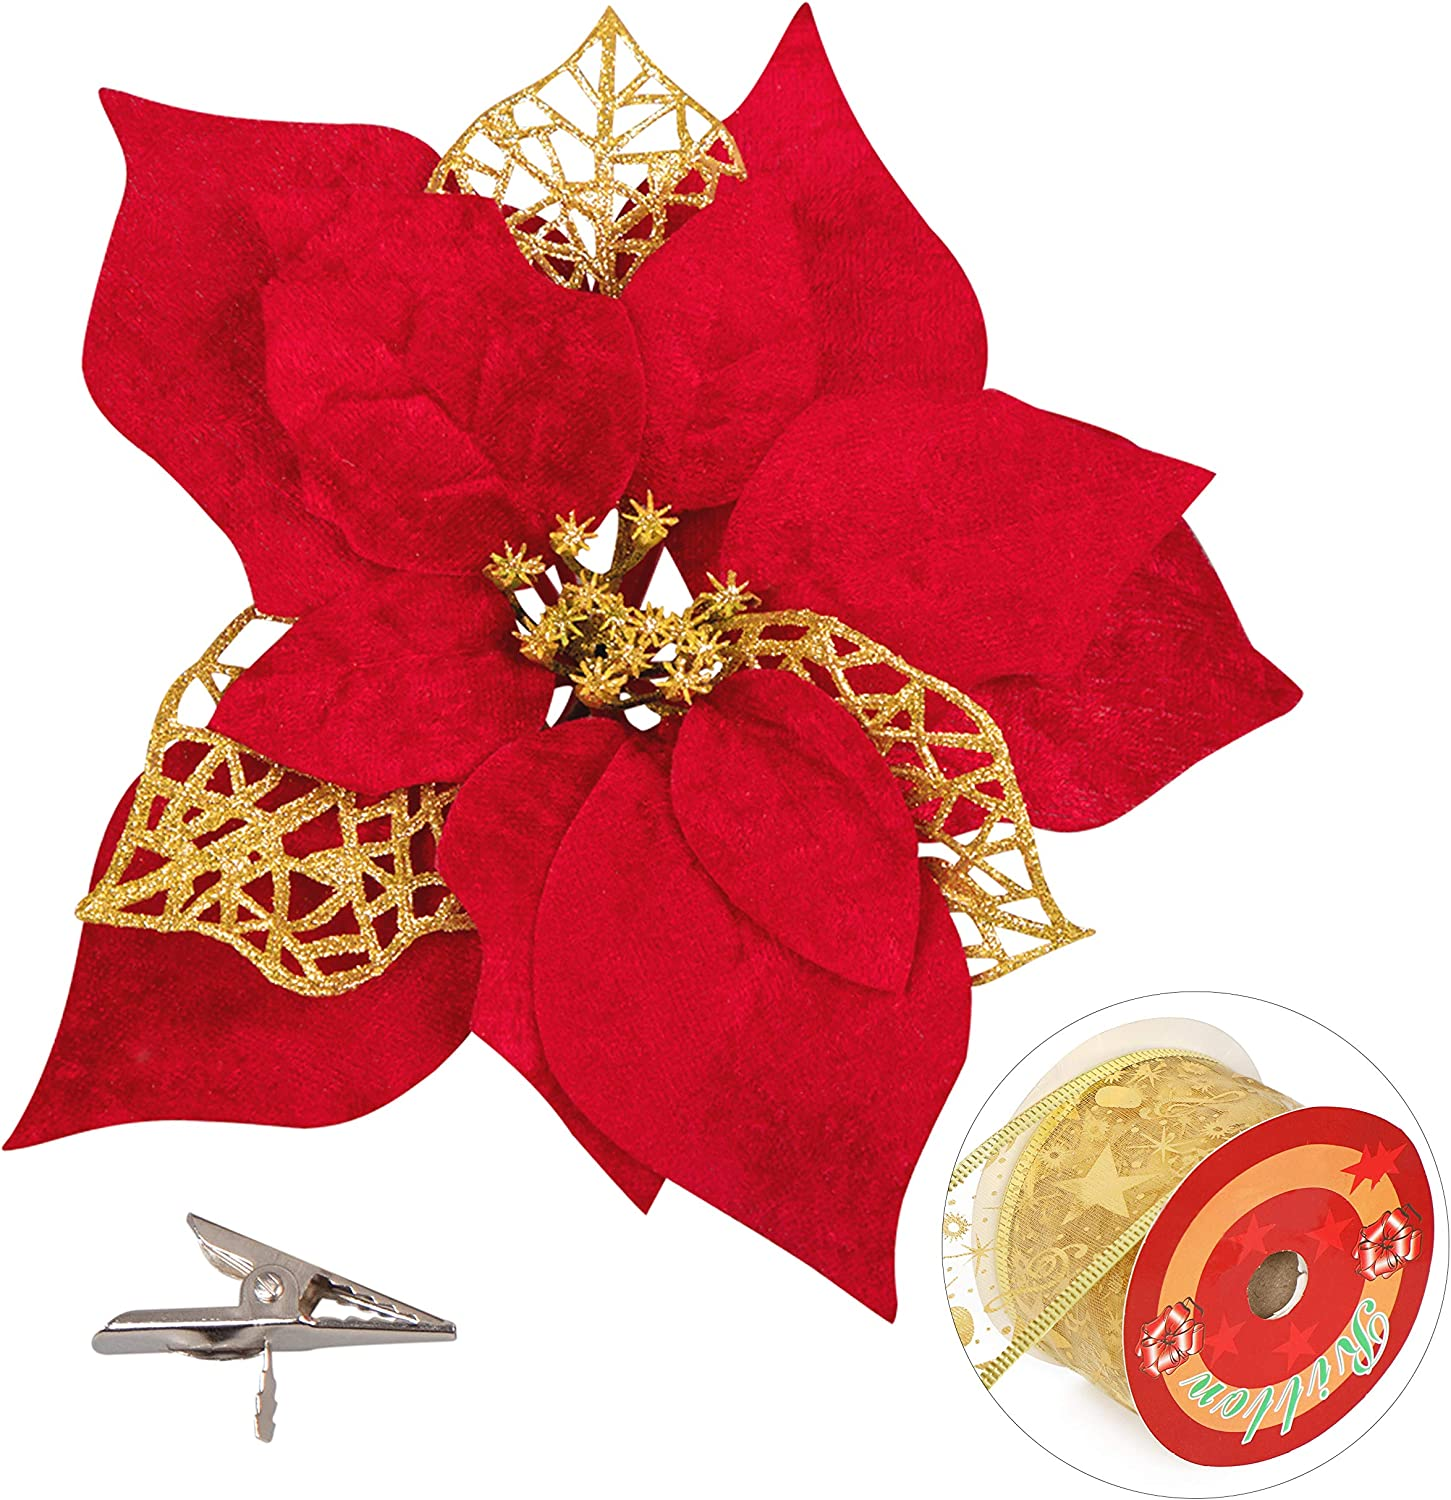 20 Pieces Christmas Poinsettia Artificial Flowers Decorations&20 Clips &11 Yard Ribbon - Xmas Party Tree Wreath Ornaments Glitter